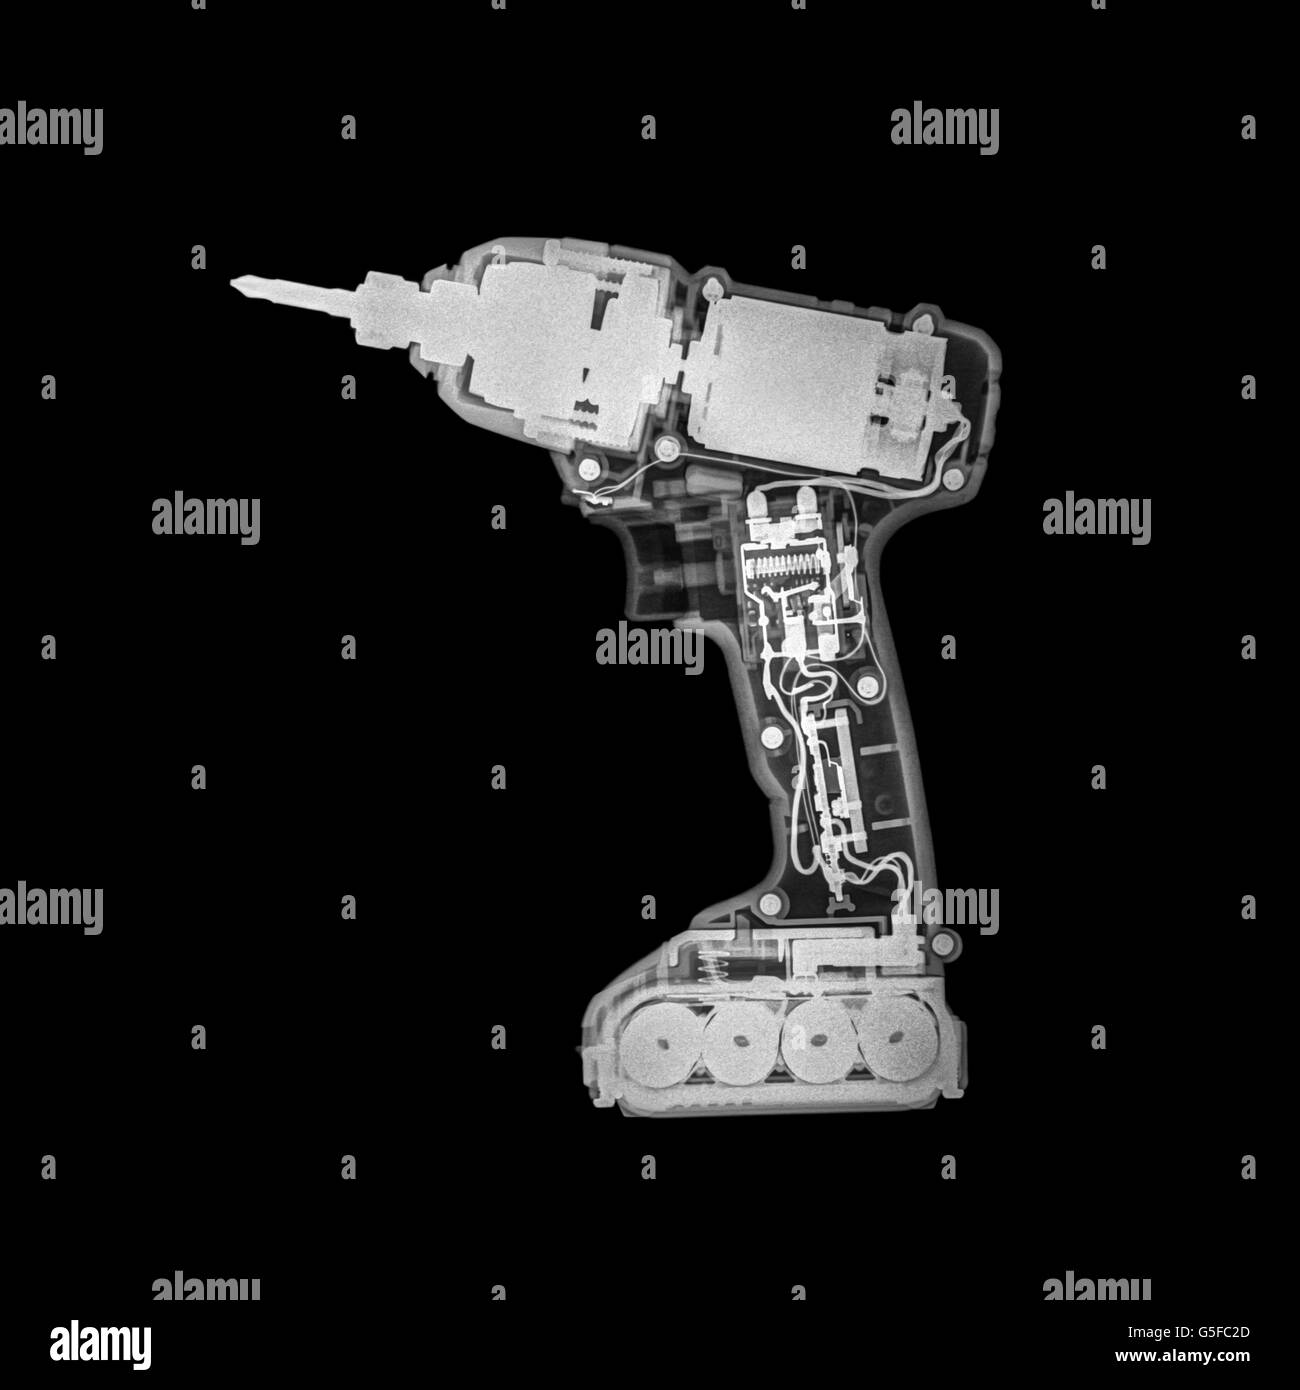 x-ray of a wireless drill - Stock Image